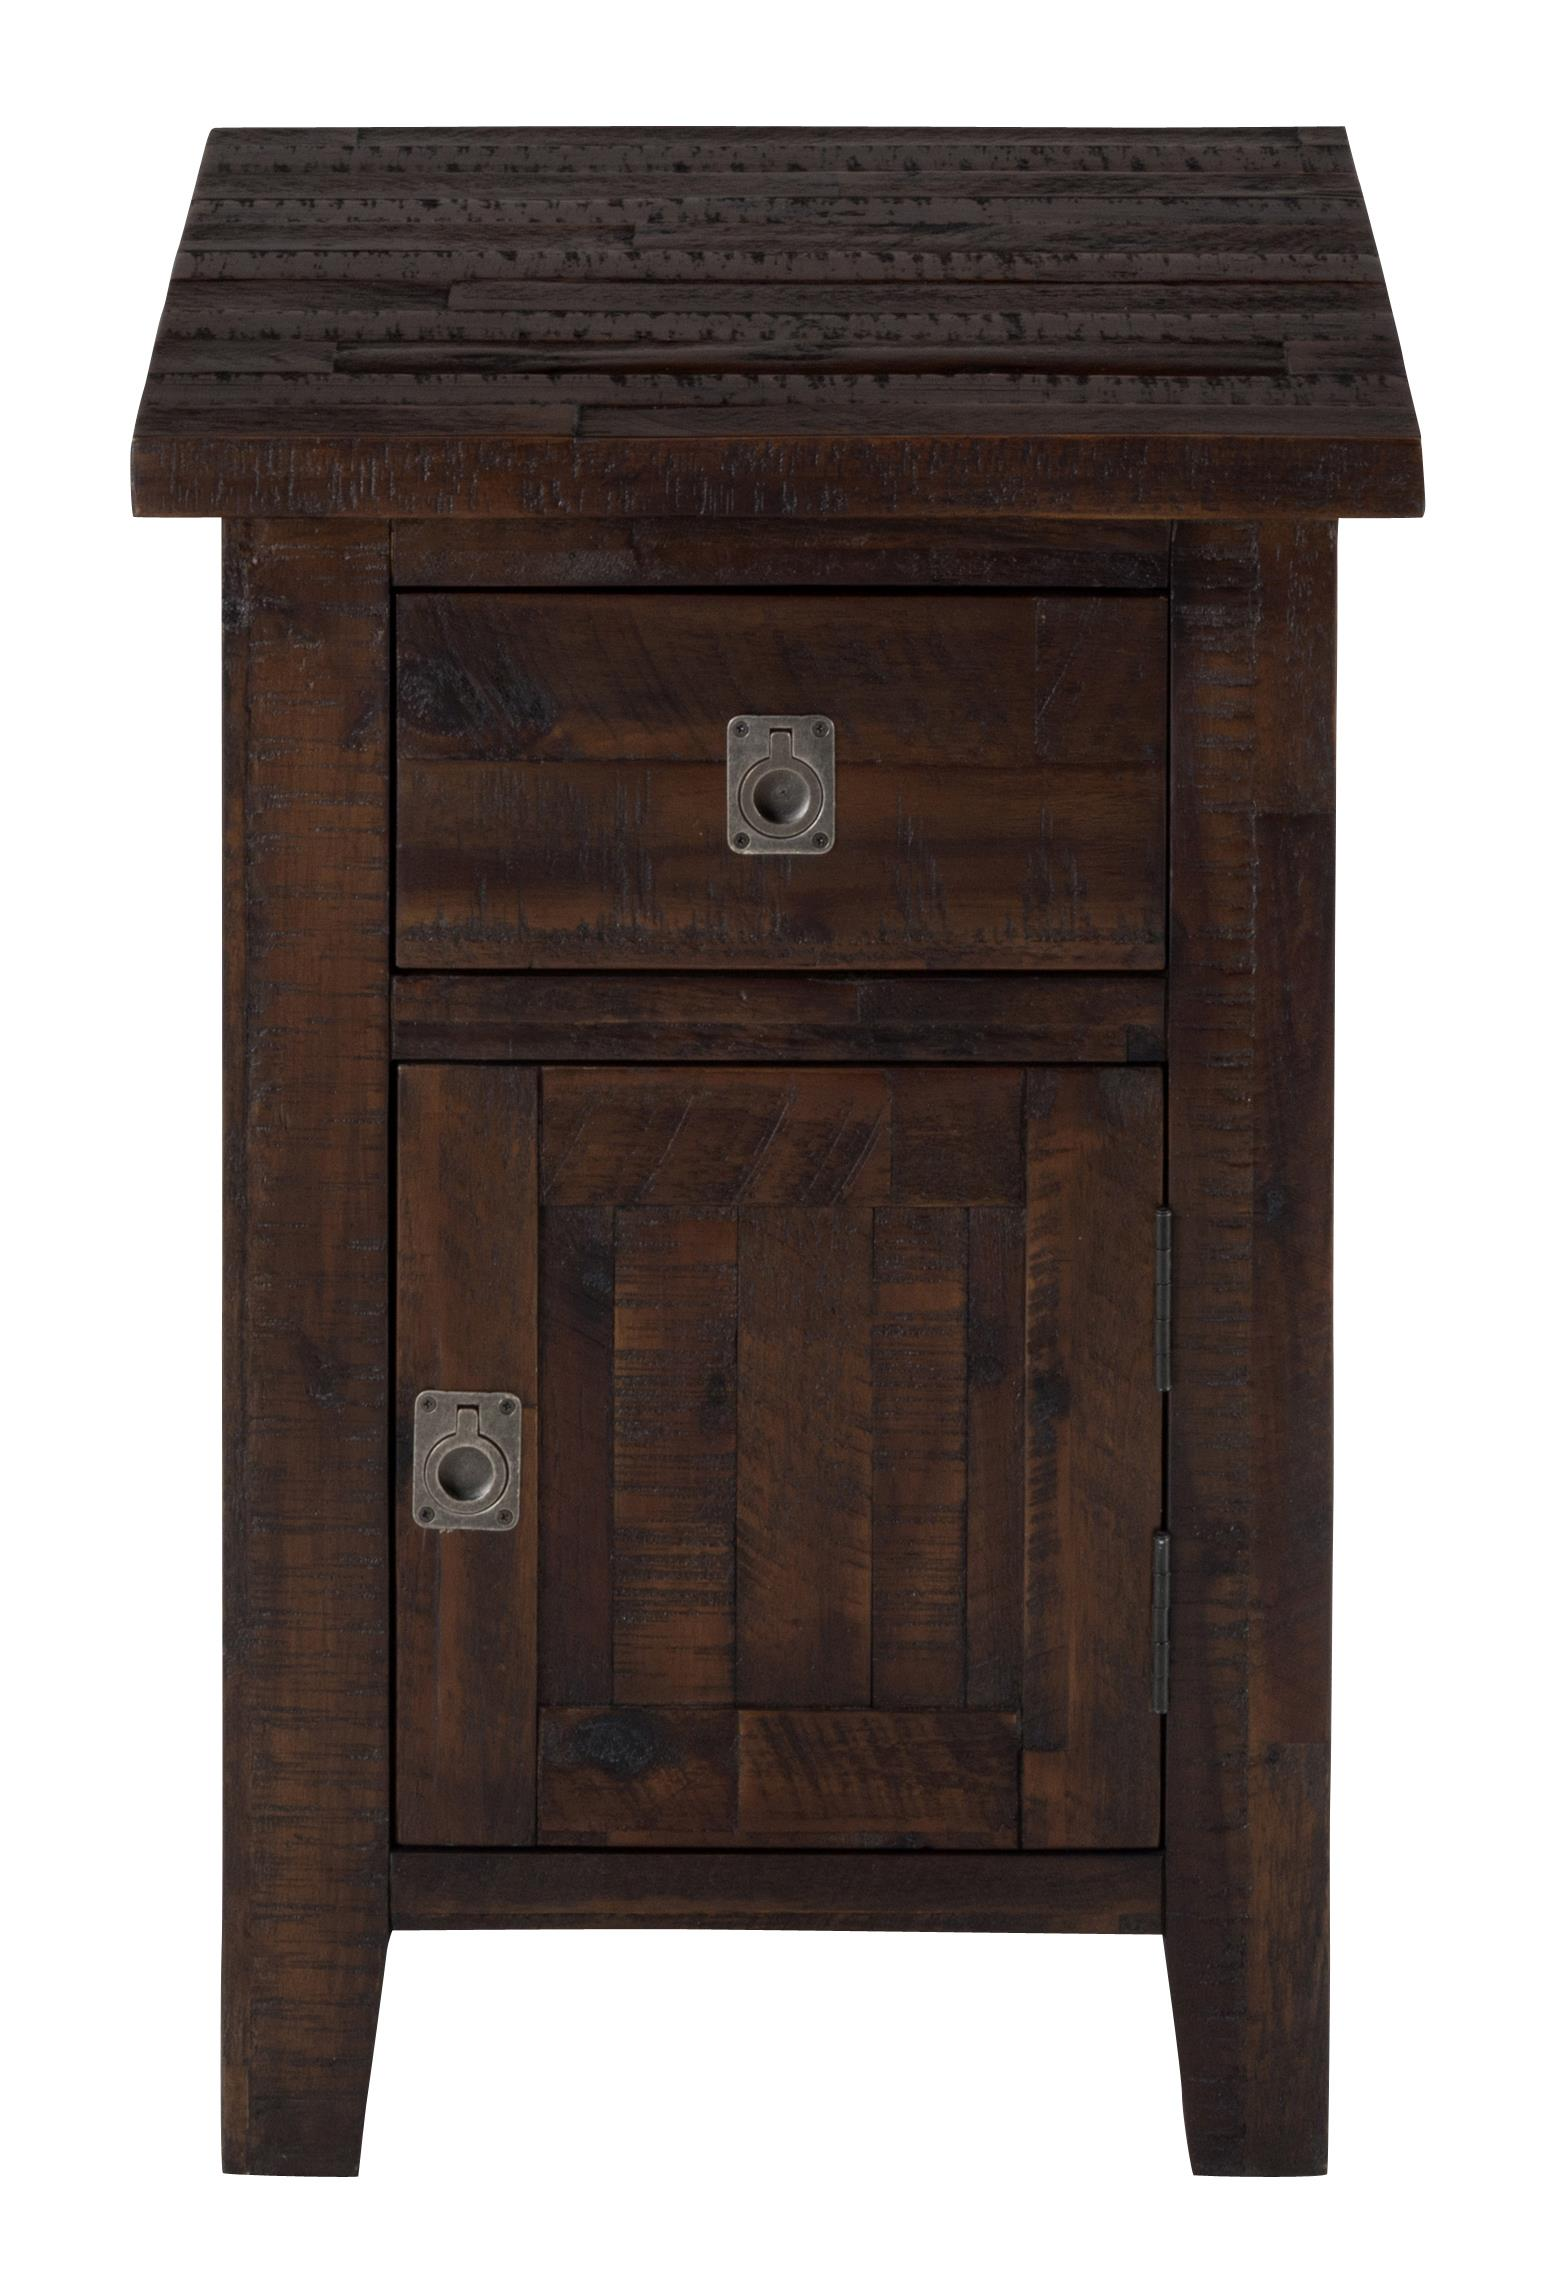 Kona Grove Cabinet Chairside Table by Jofran at Jofran